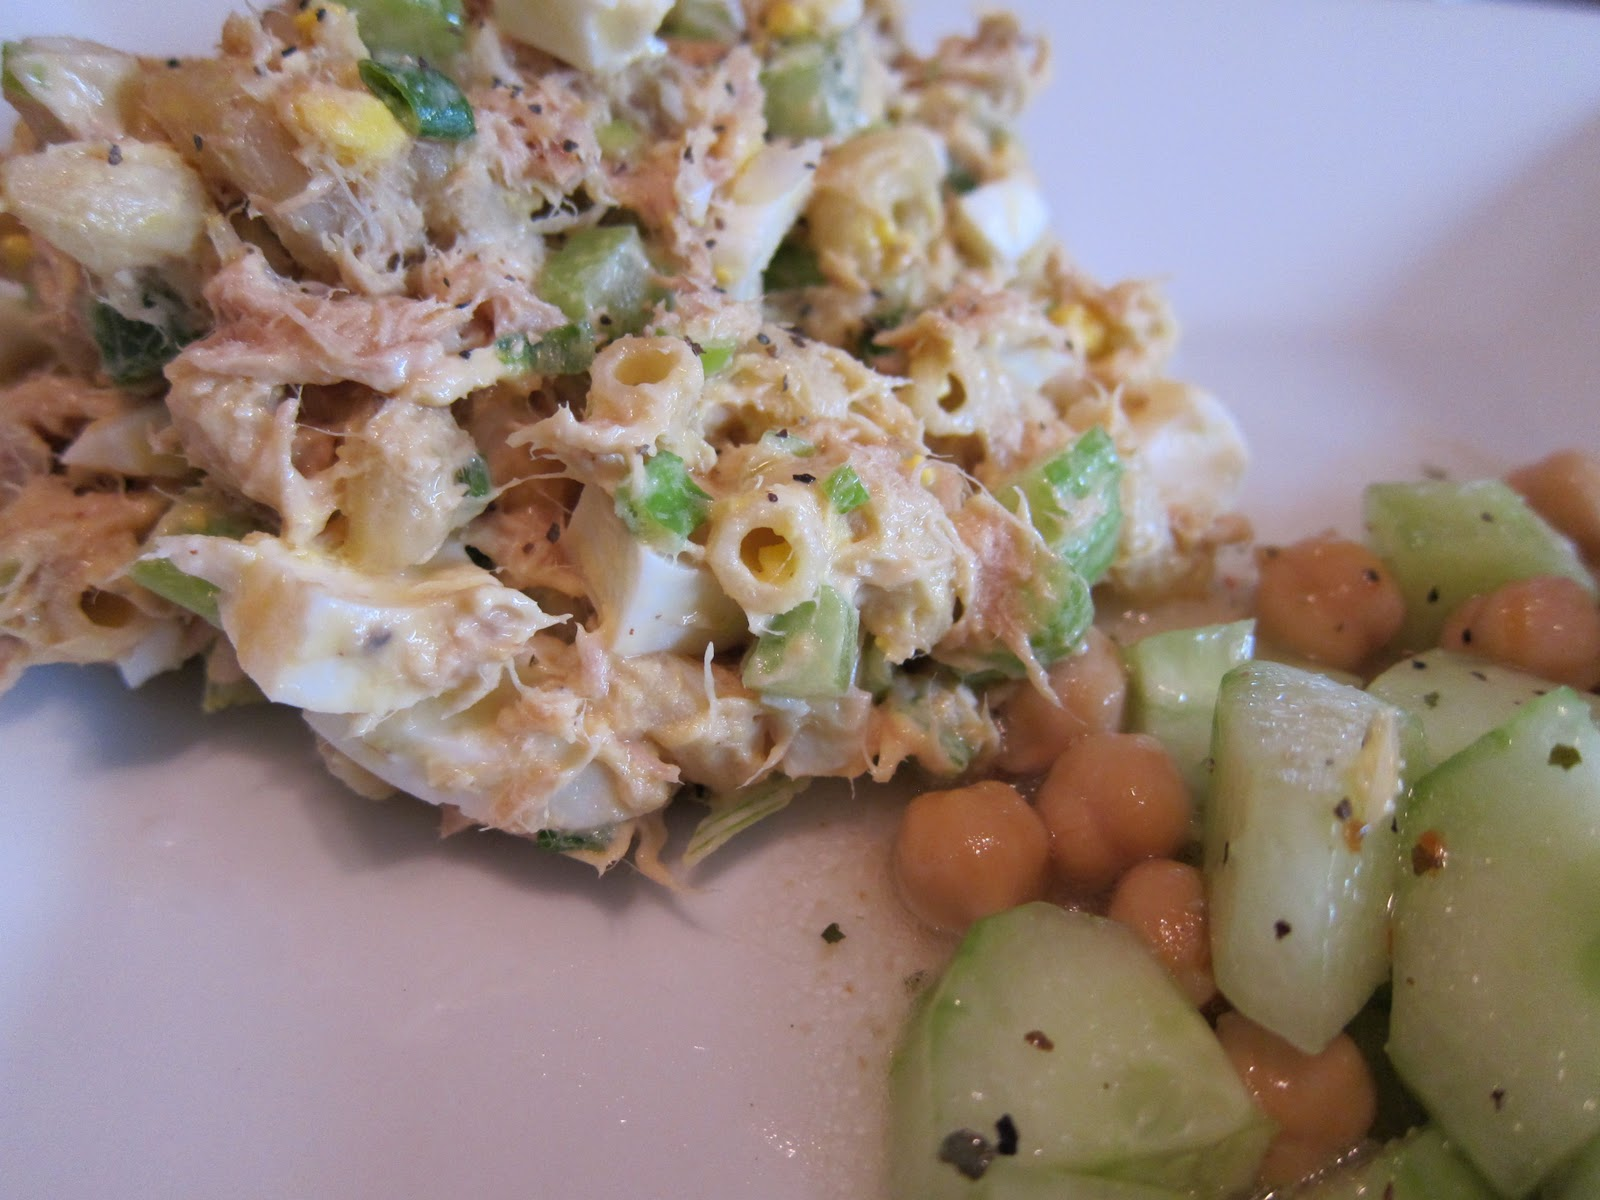 Tuna macaroni salad what 39 s for dinner for Macaroni salad with tuna fish